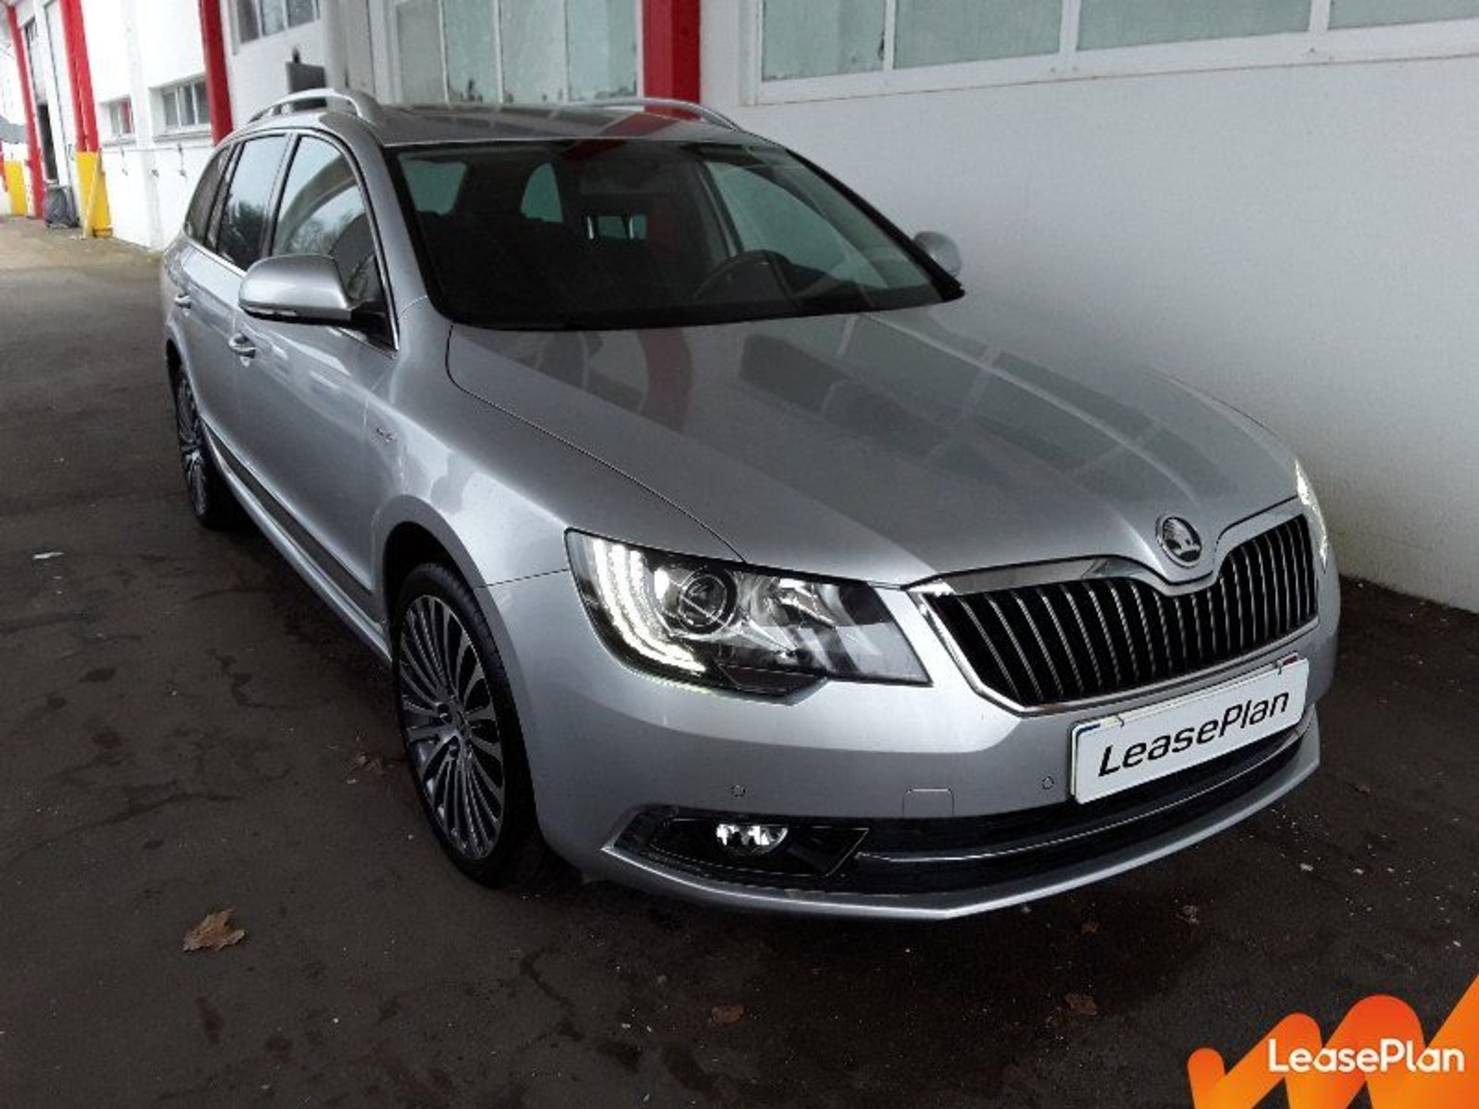 Škoda Superb 2.0 TDI 140 GreenTec, Laurin & Klement DSG detail1